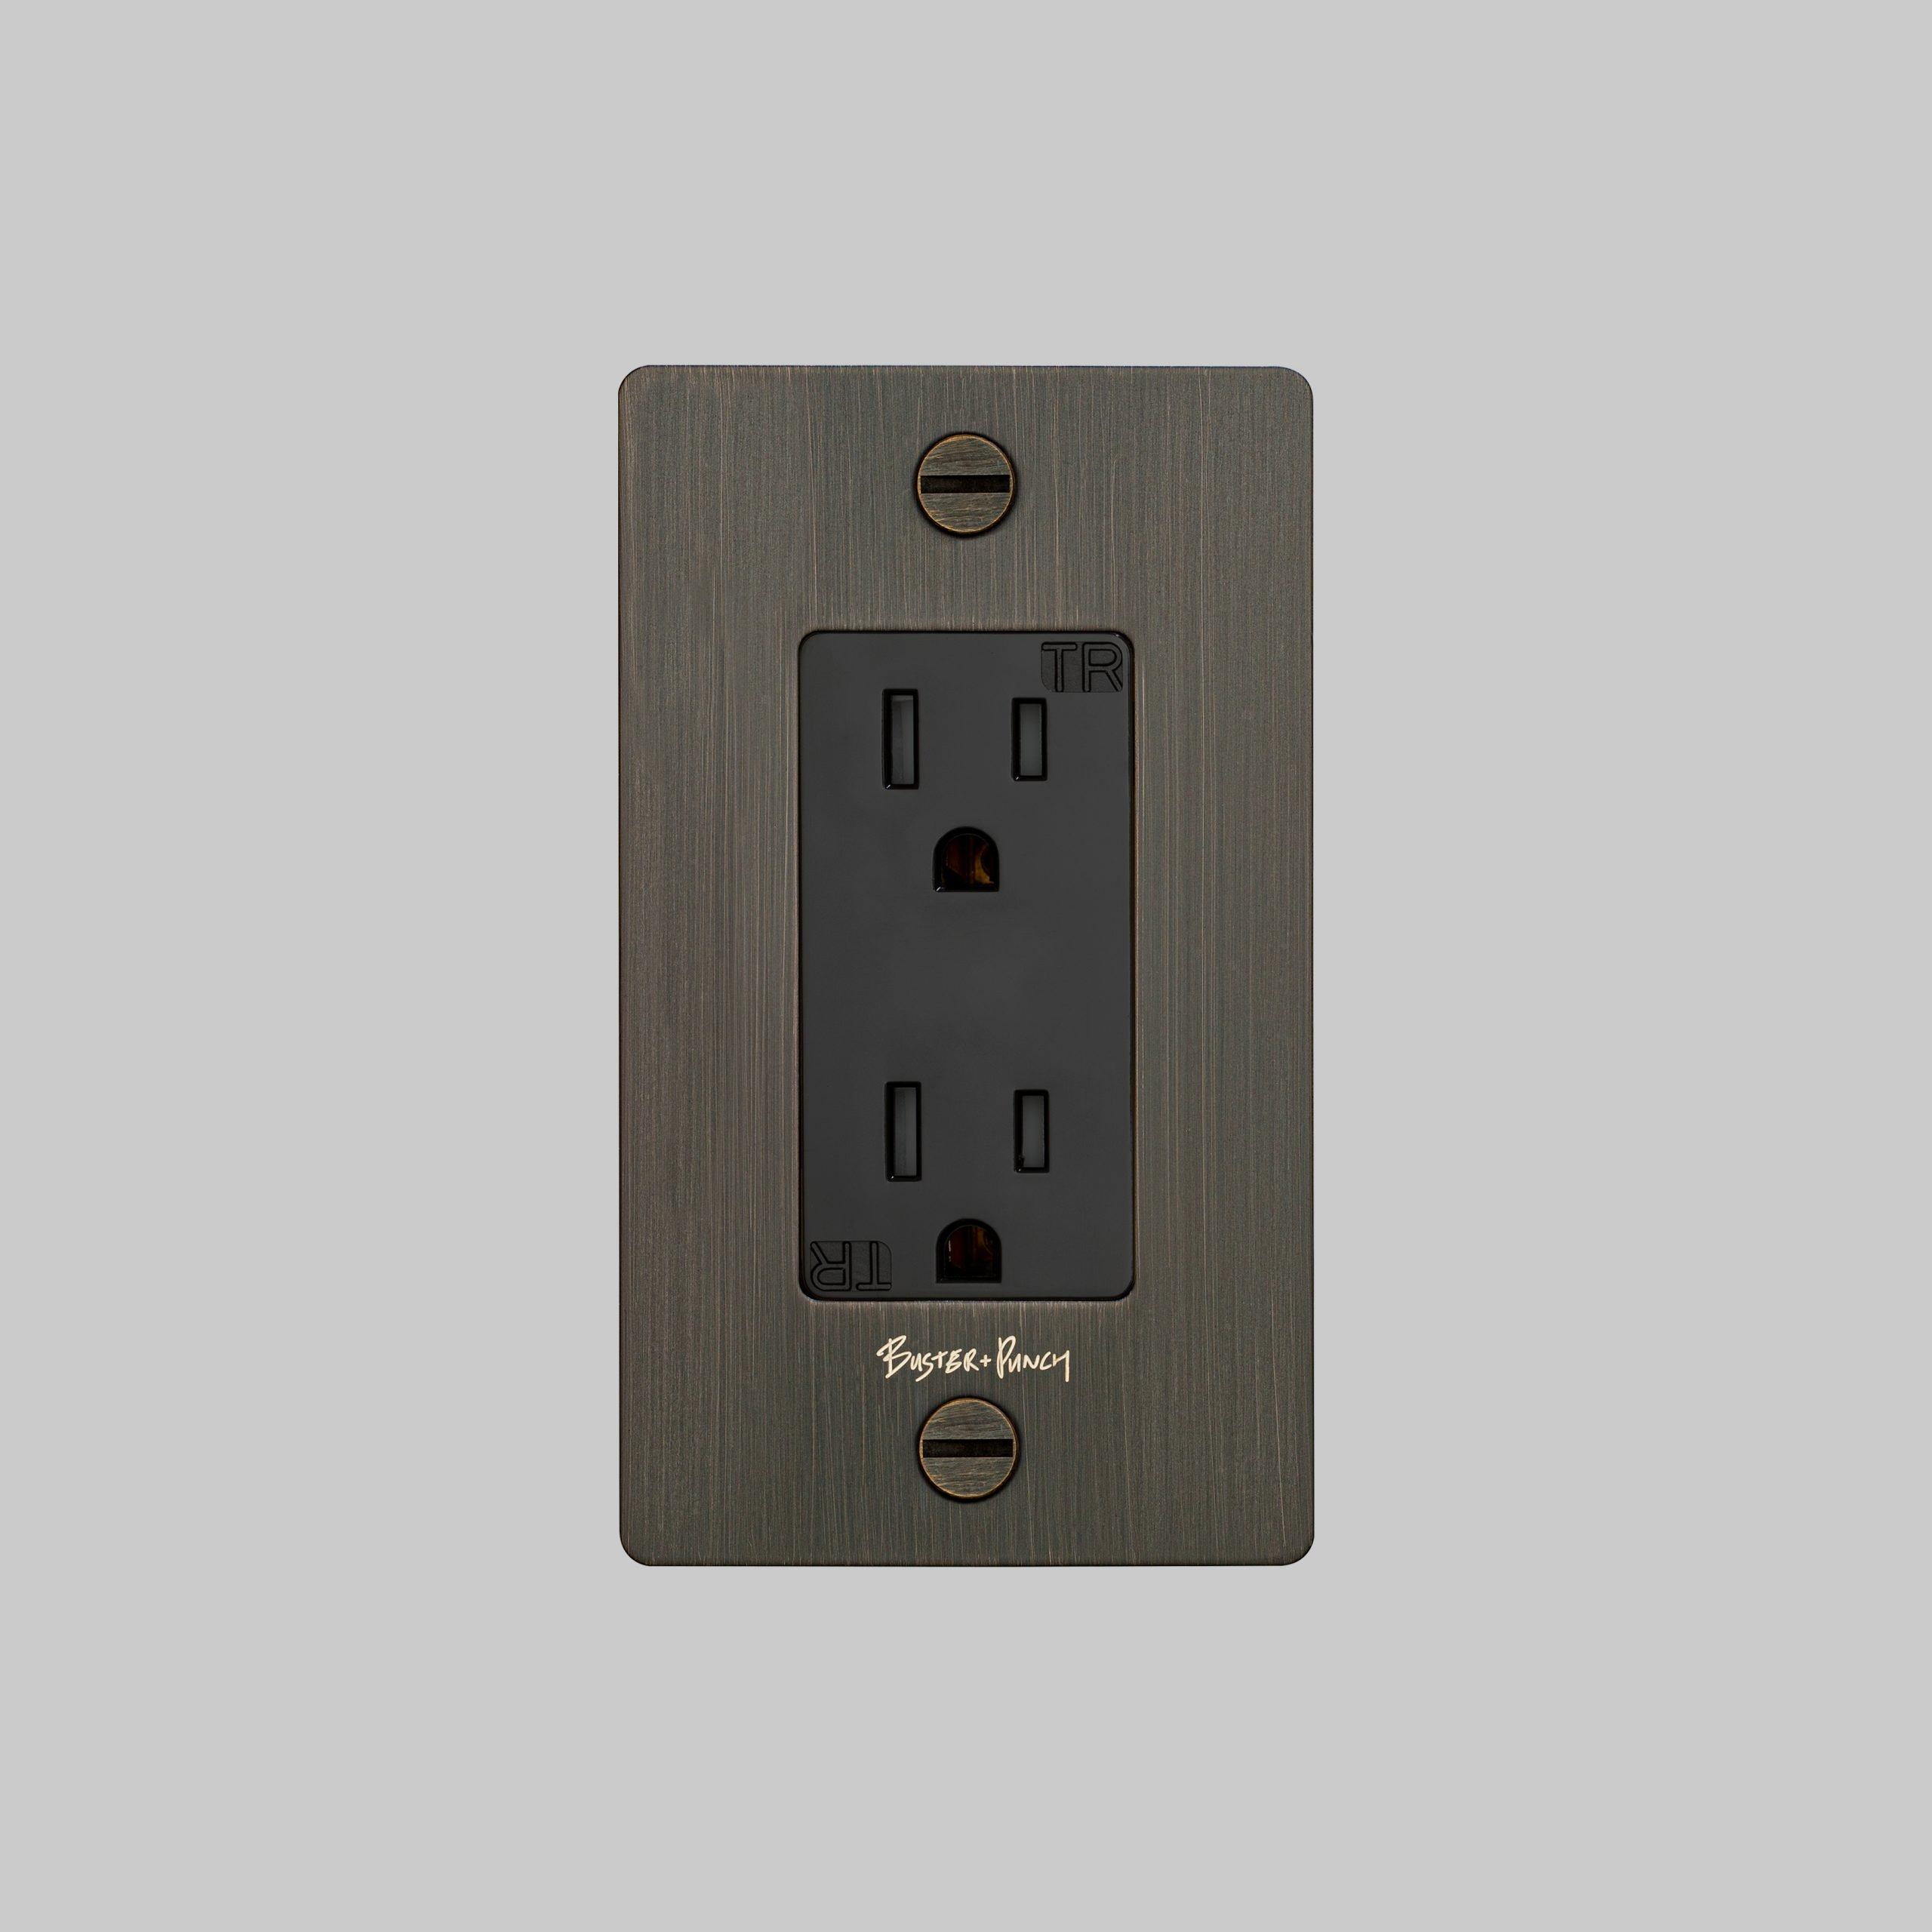 2. Buster+Punch_US_1G_Duplex_Outlet_Smoked_Bronze_Front